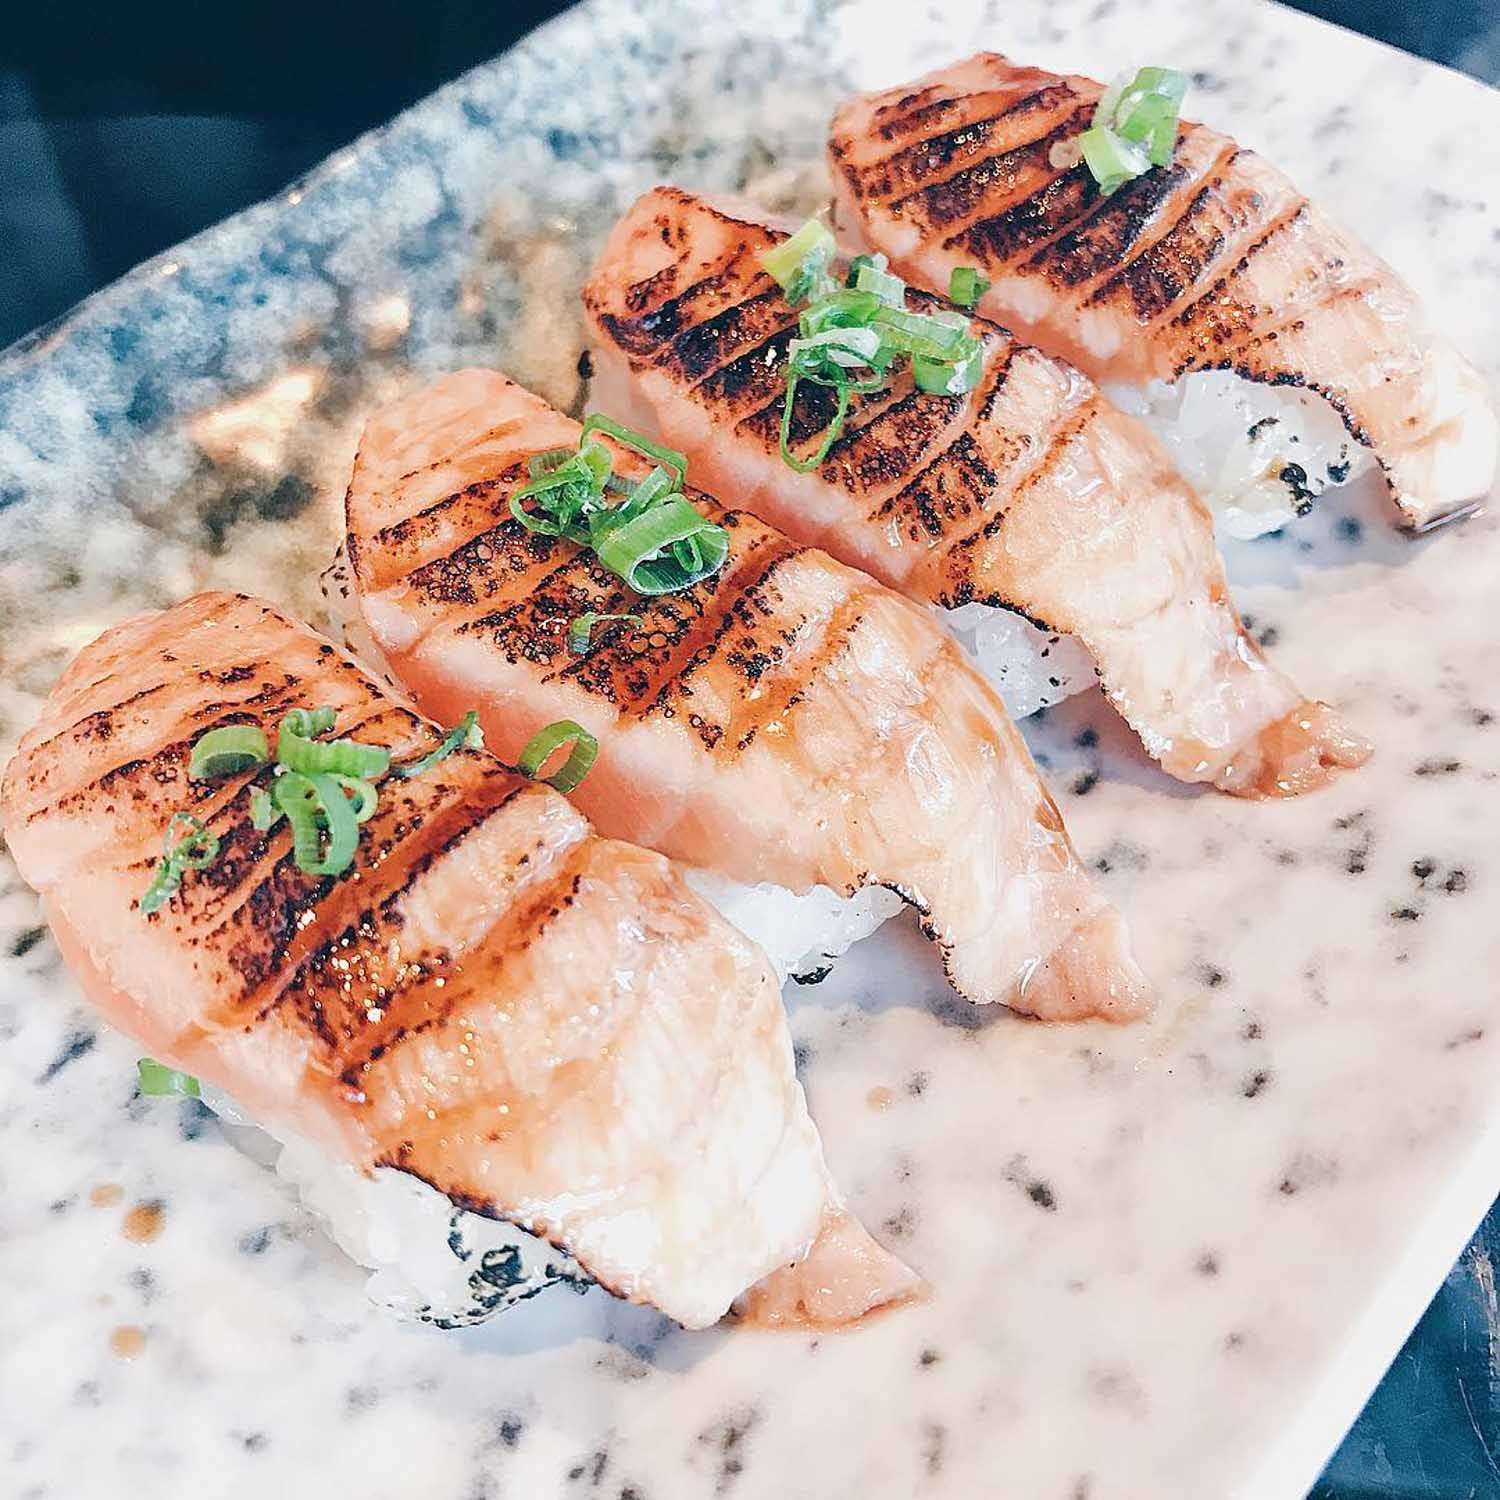 Halal Food Delivery Places - Hei sushi